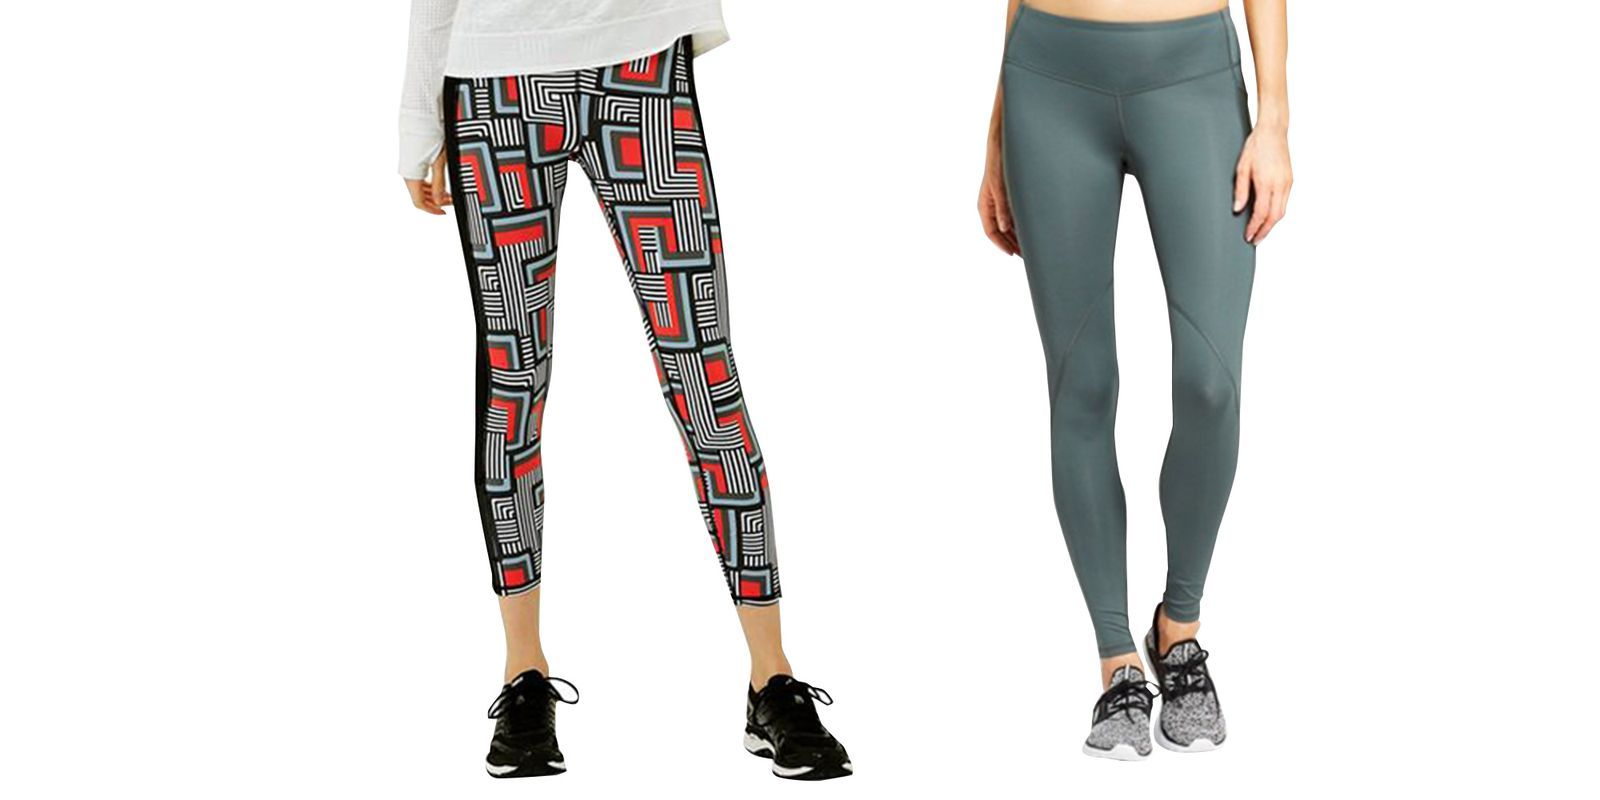 81ec9fb2638df 13 Leggings With Pockets That Can Store All Your Stuff